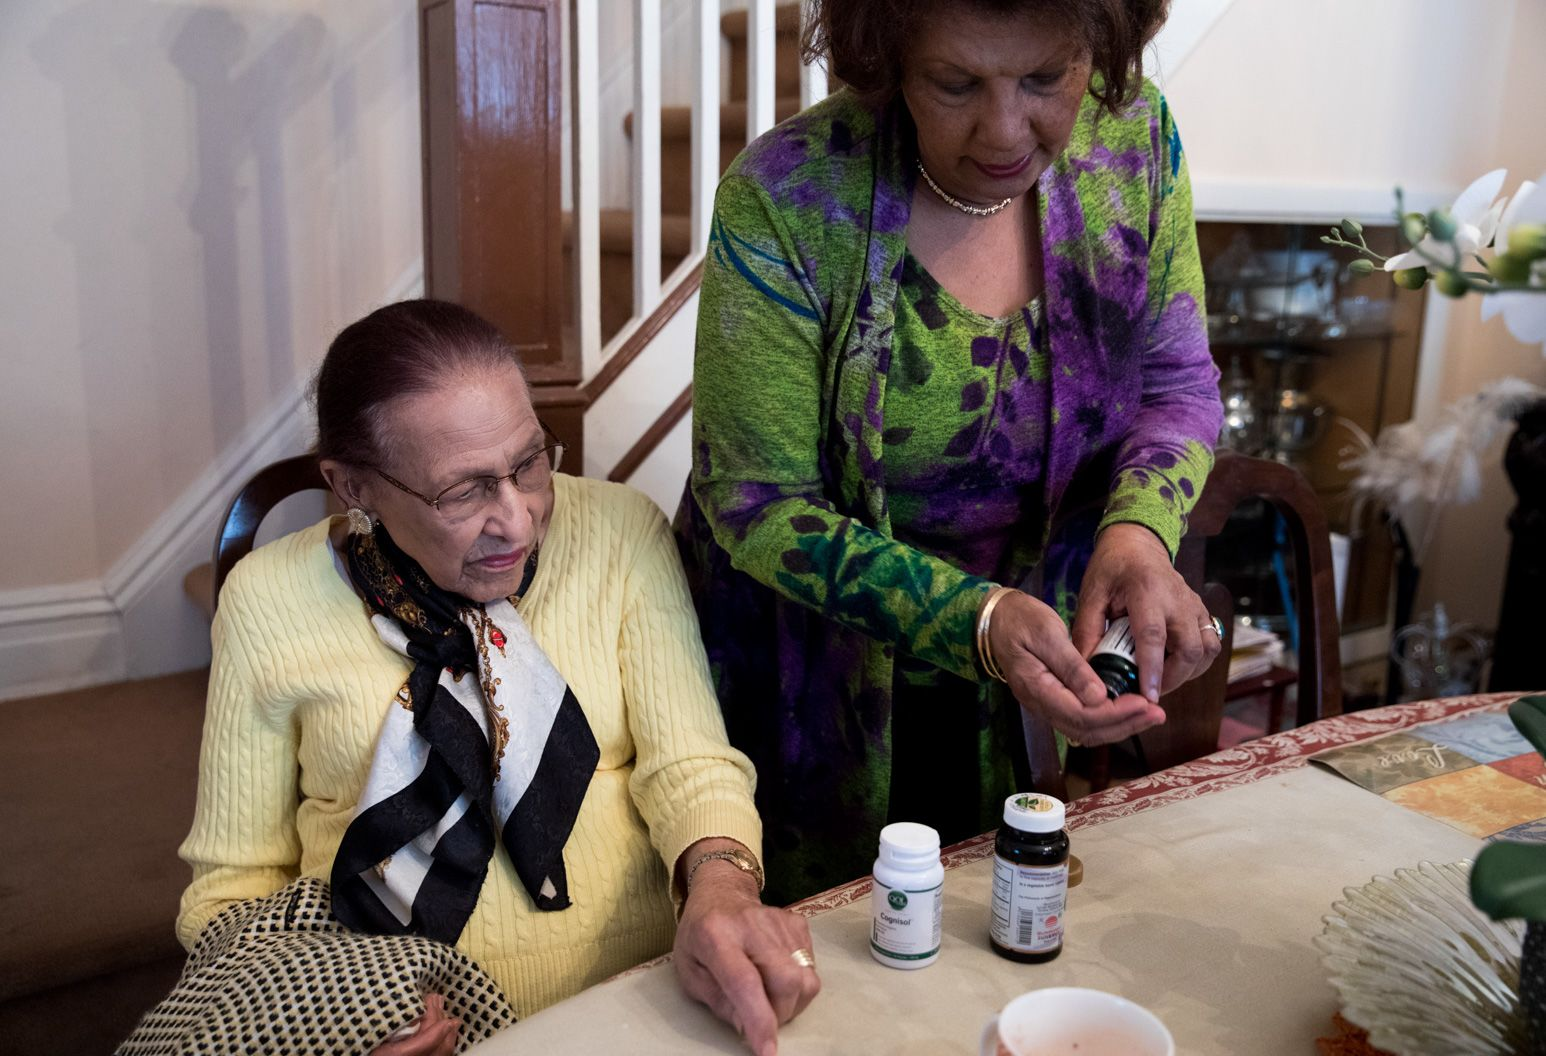 Woman prepares medication for an older woman at the dining table.